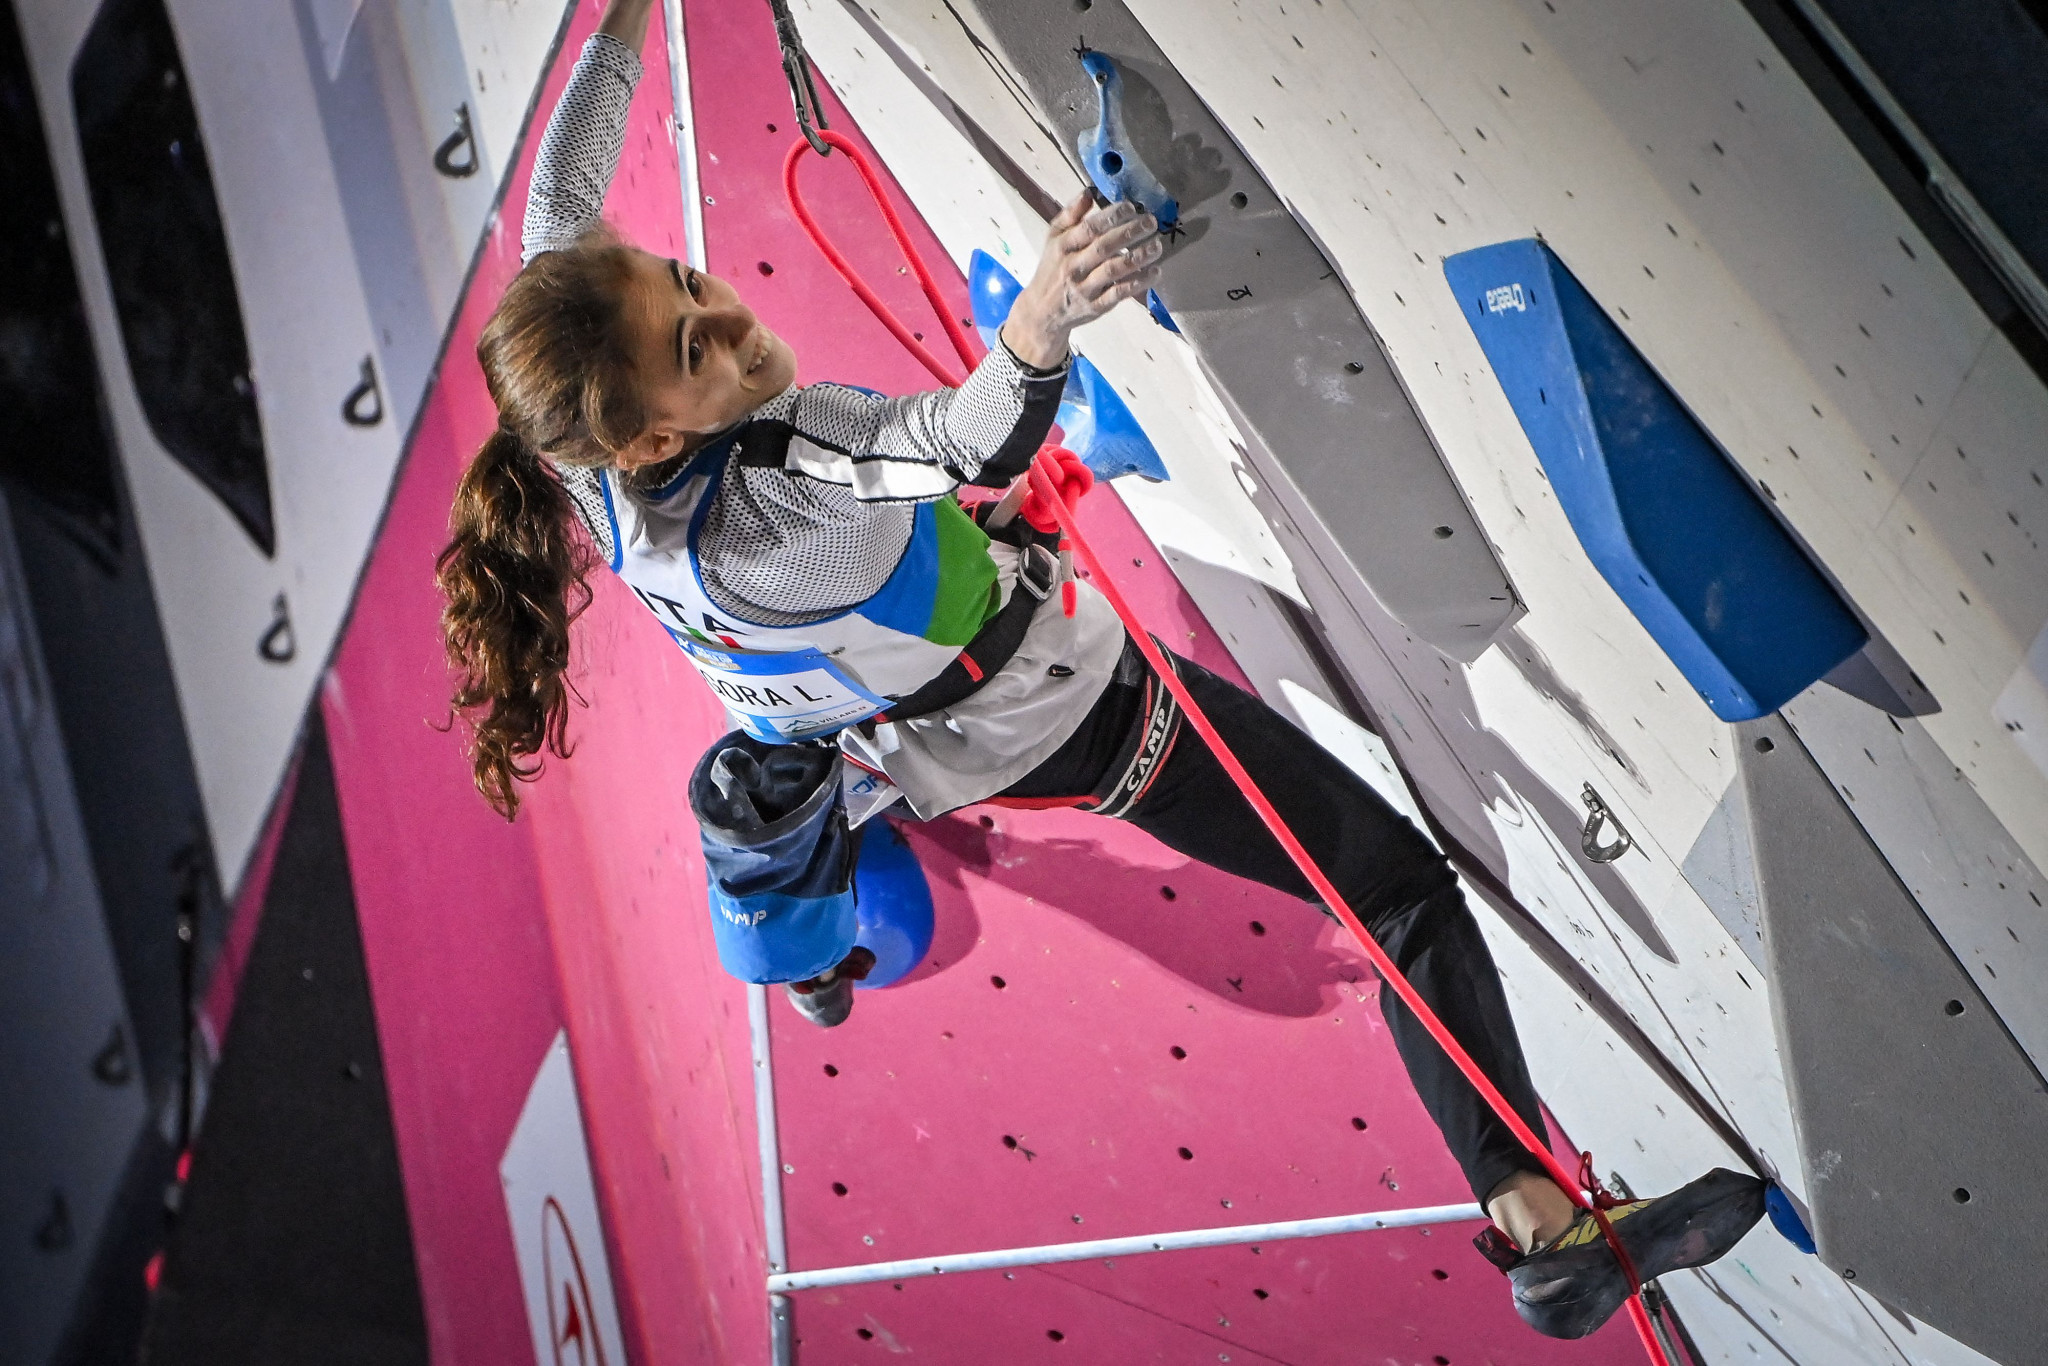 Climbers are set to compete in speed, lead and boulder competitions in the Japanese capital ©Getty Images